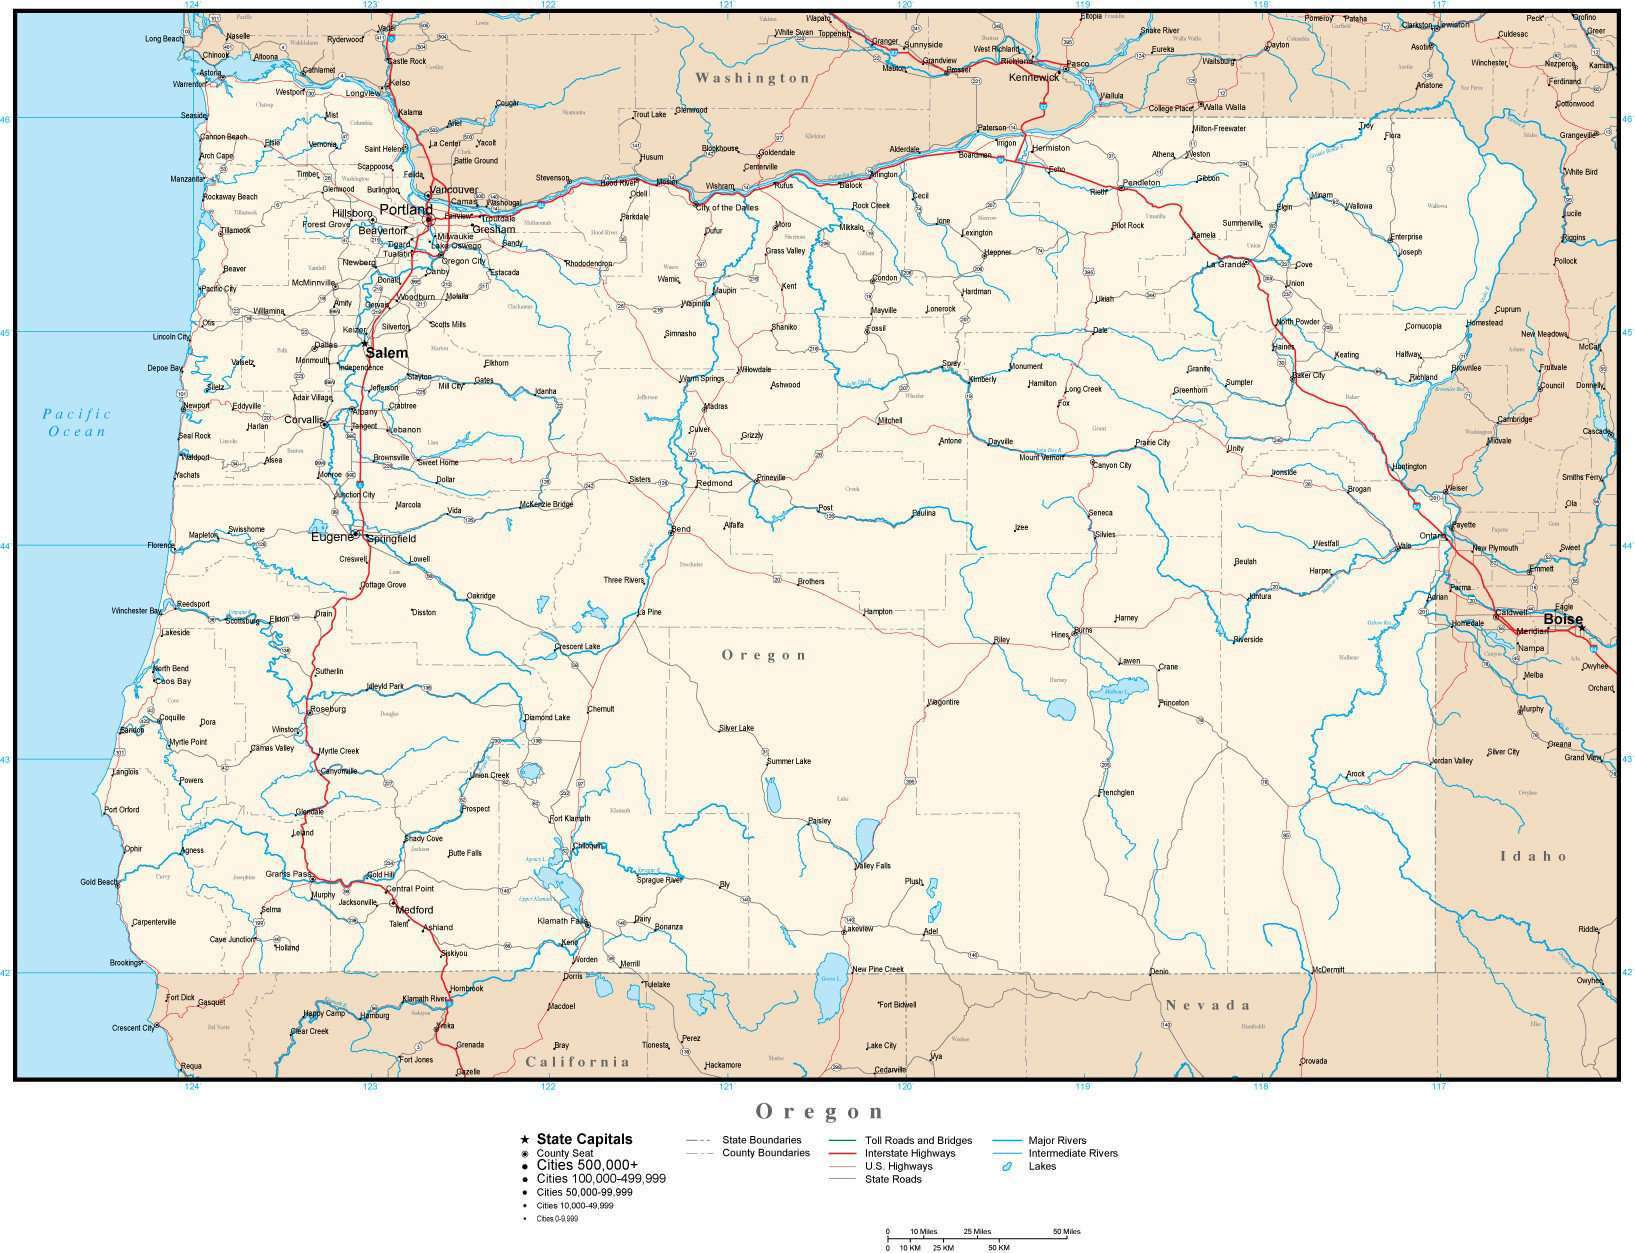 Oregon Map In Adobe Illustrator Vector Format Map Resources